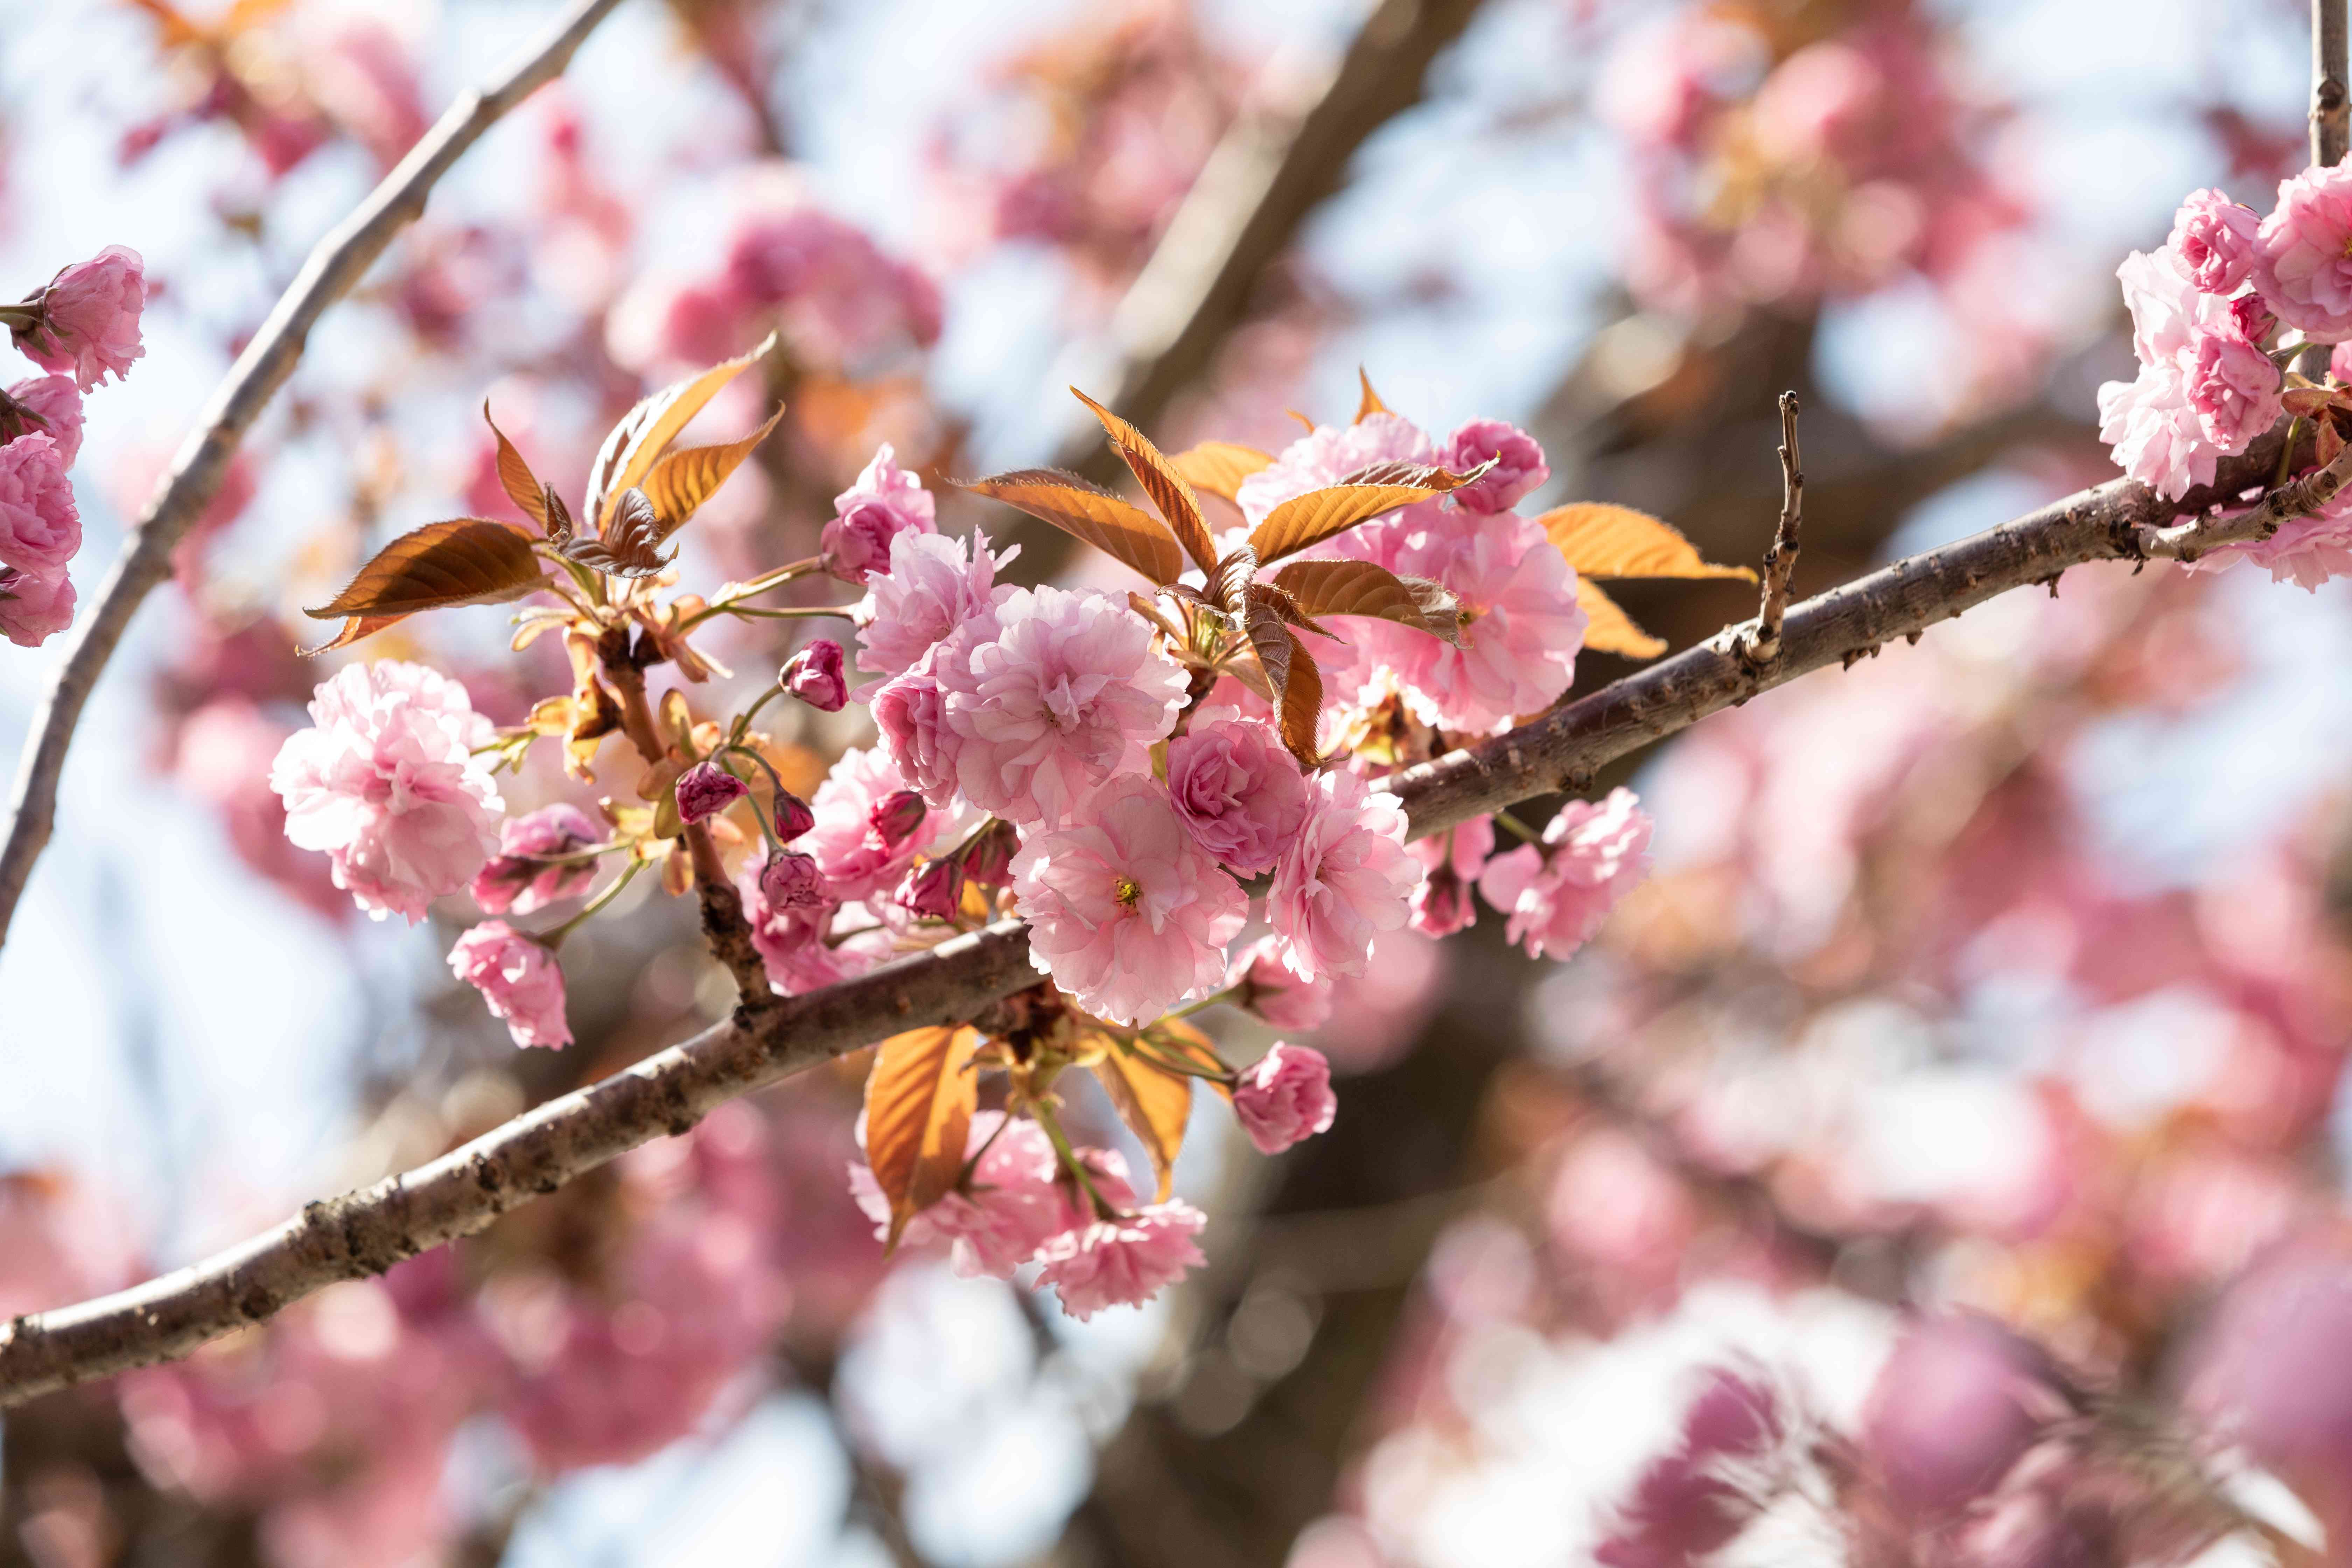 Kwanzan and yoshino cherry trees with small pink flowers and buds on branch